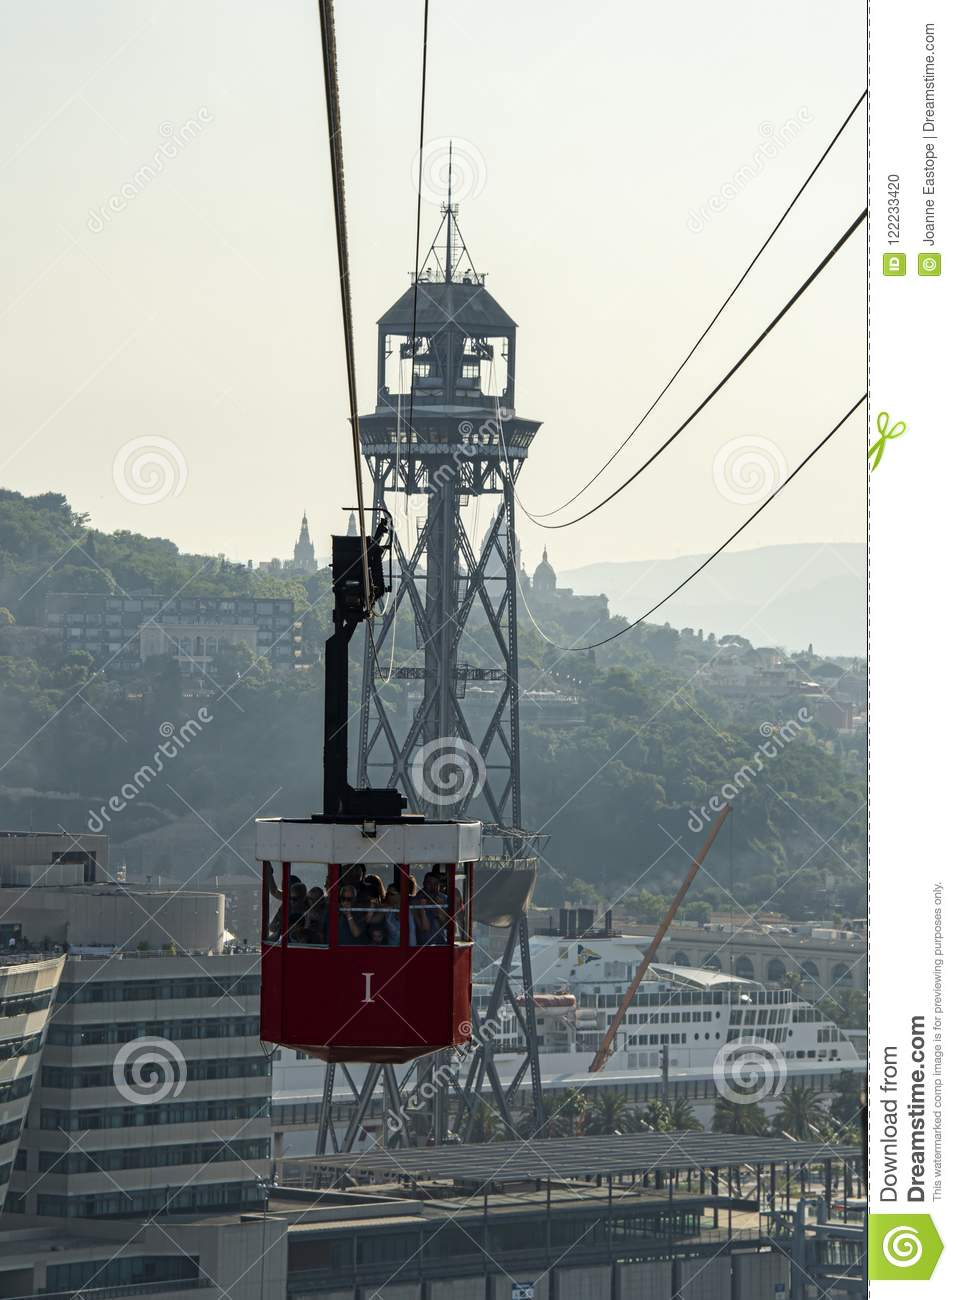 Loaded cable car coming in to Station